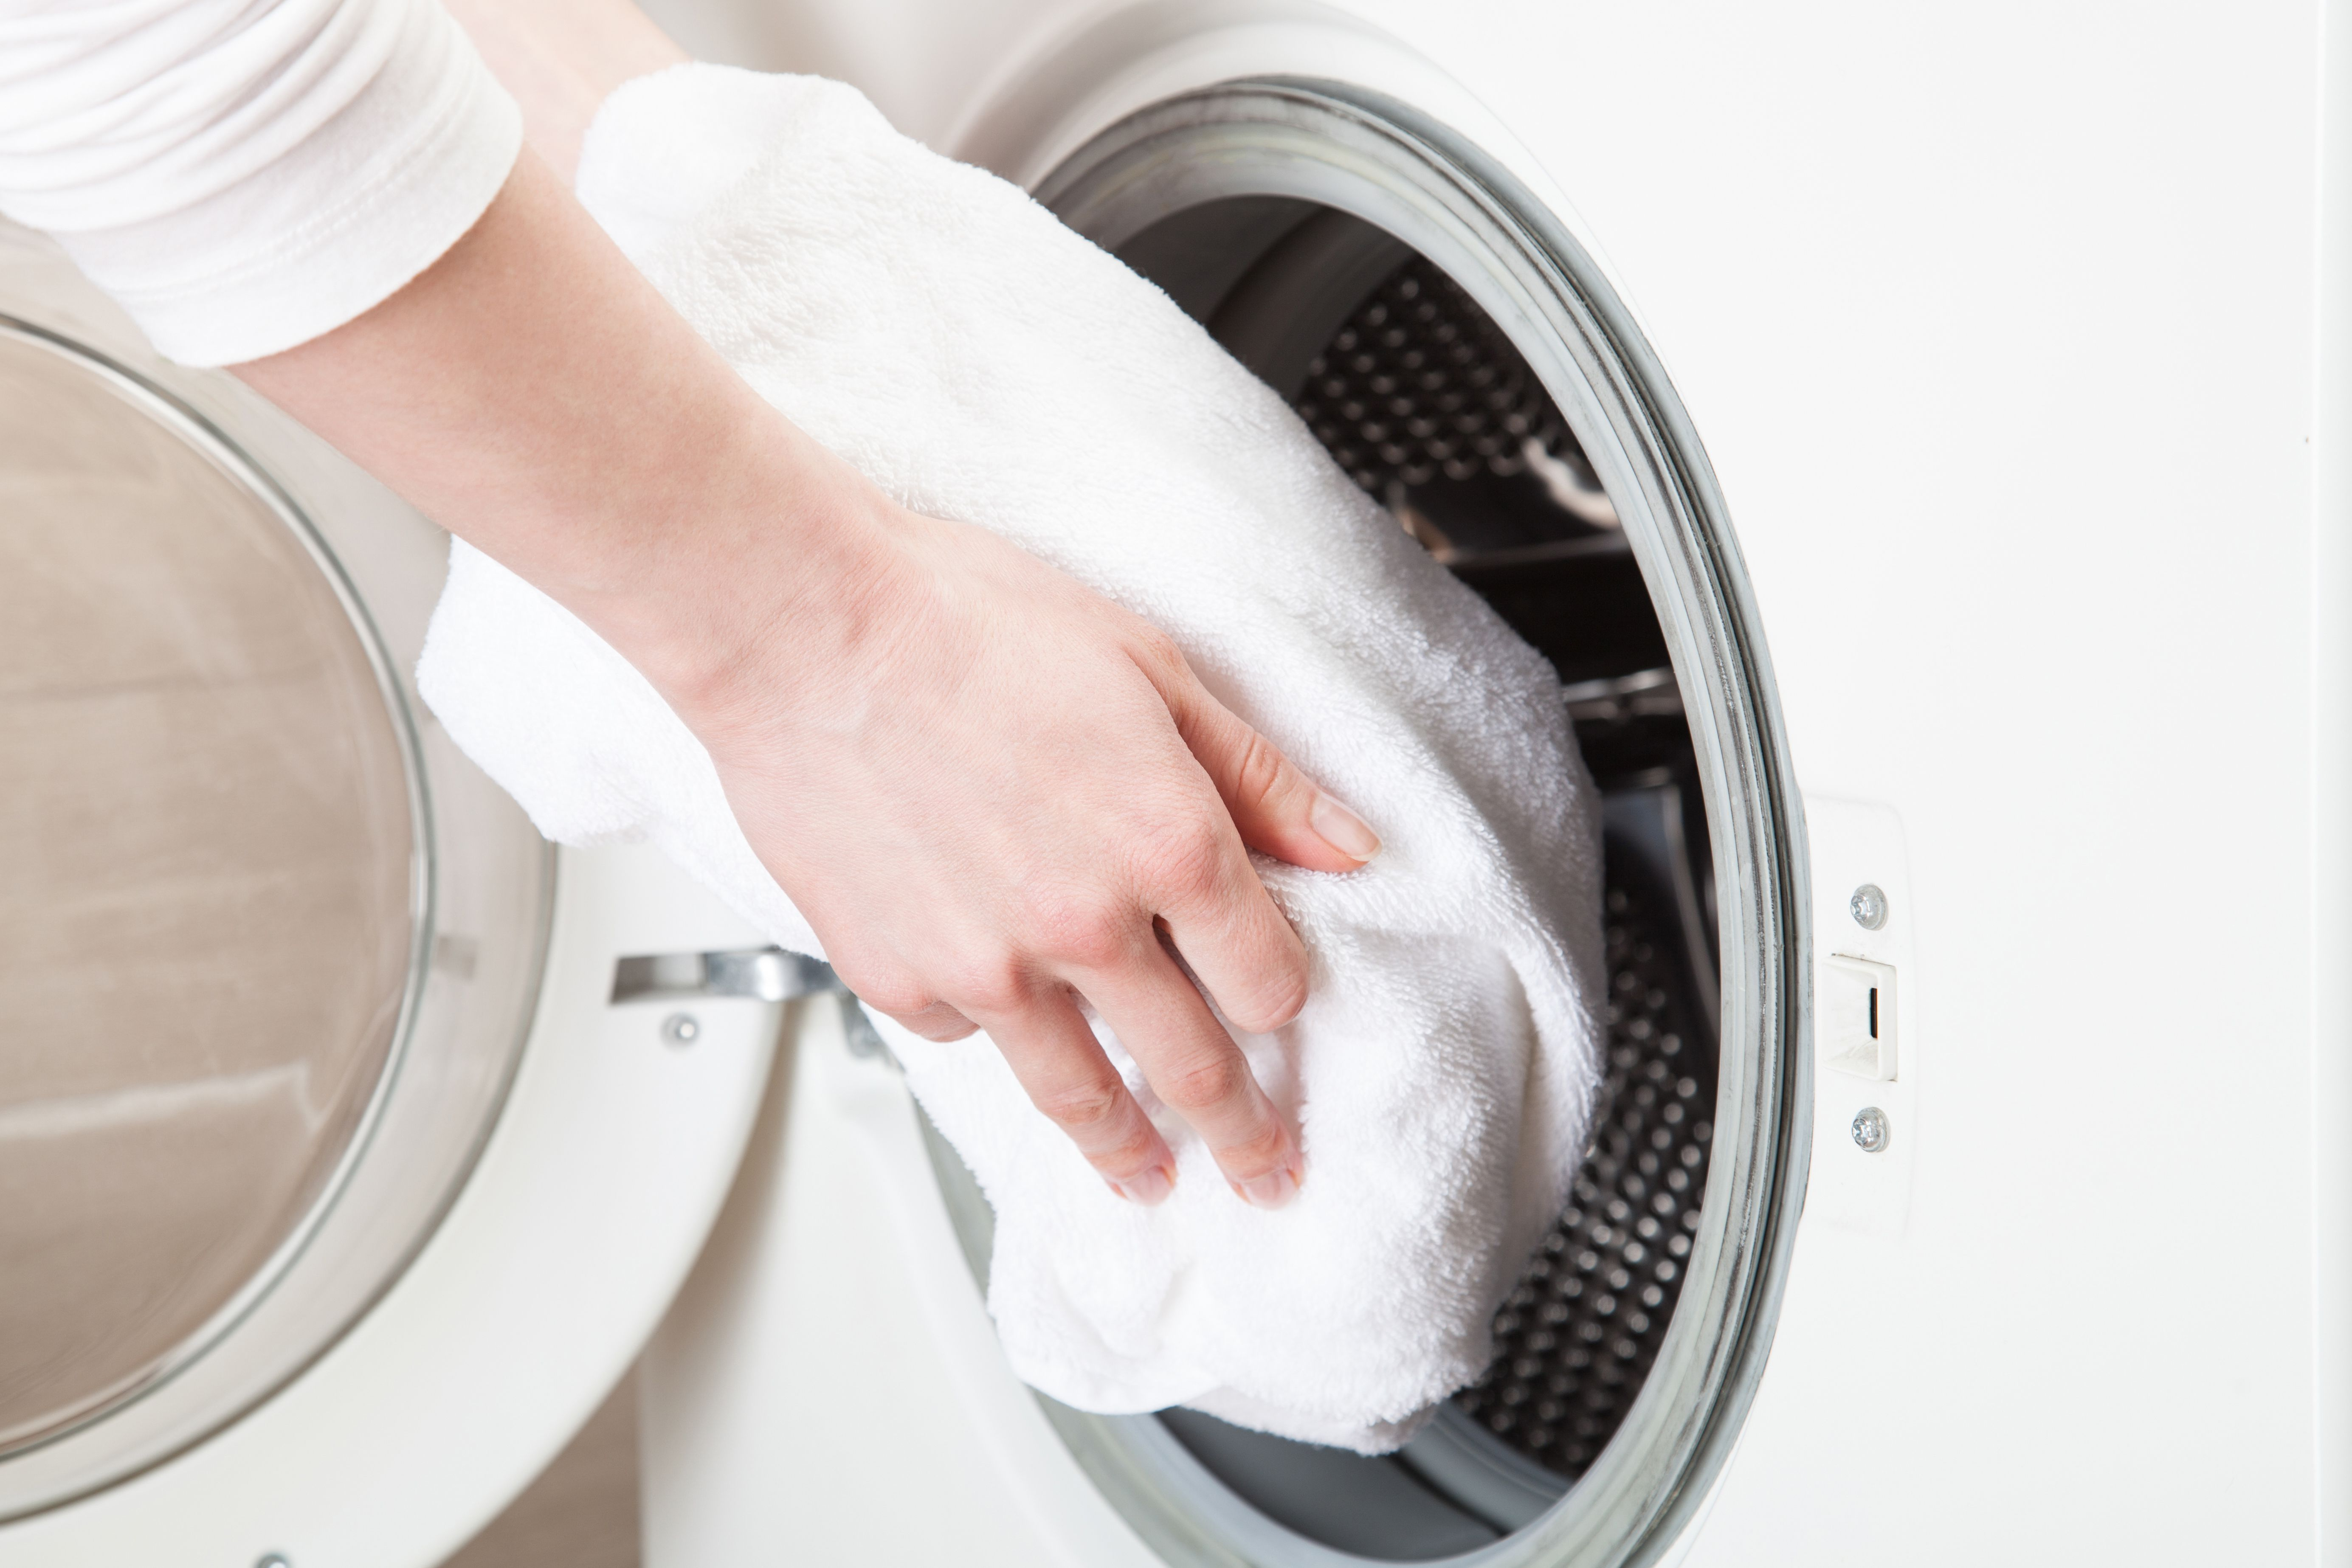 Remove Ink From Dryer